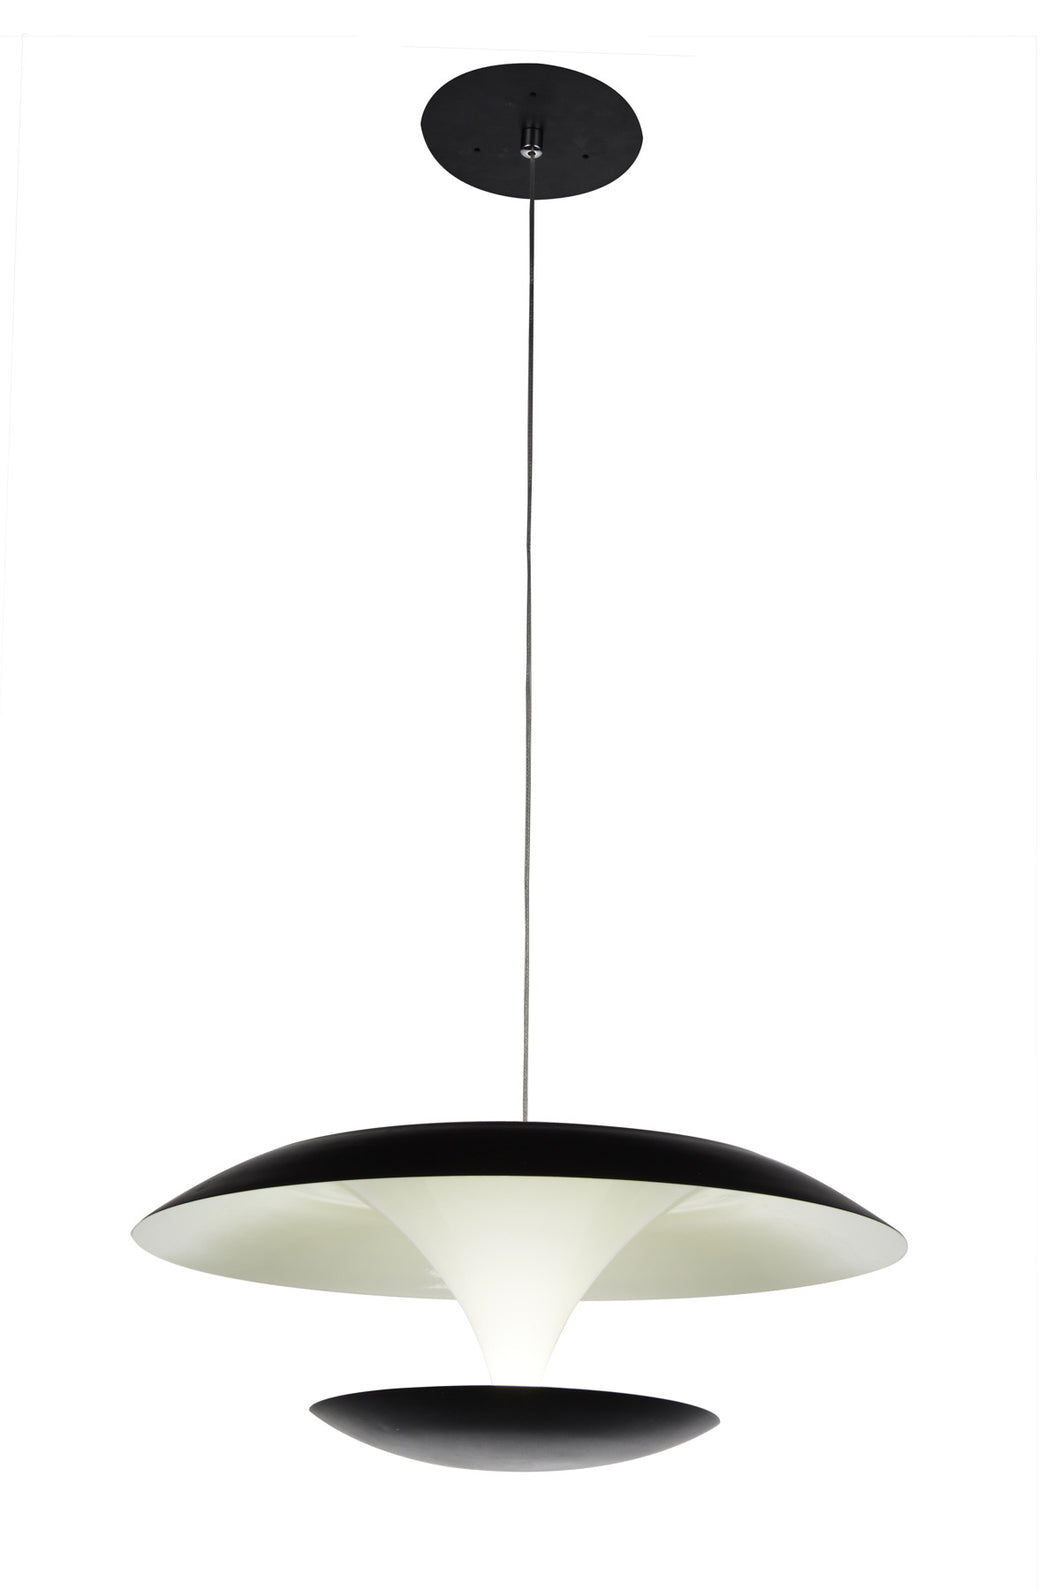 LED Down Pendant with Black & White finish